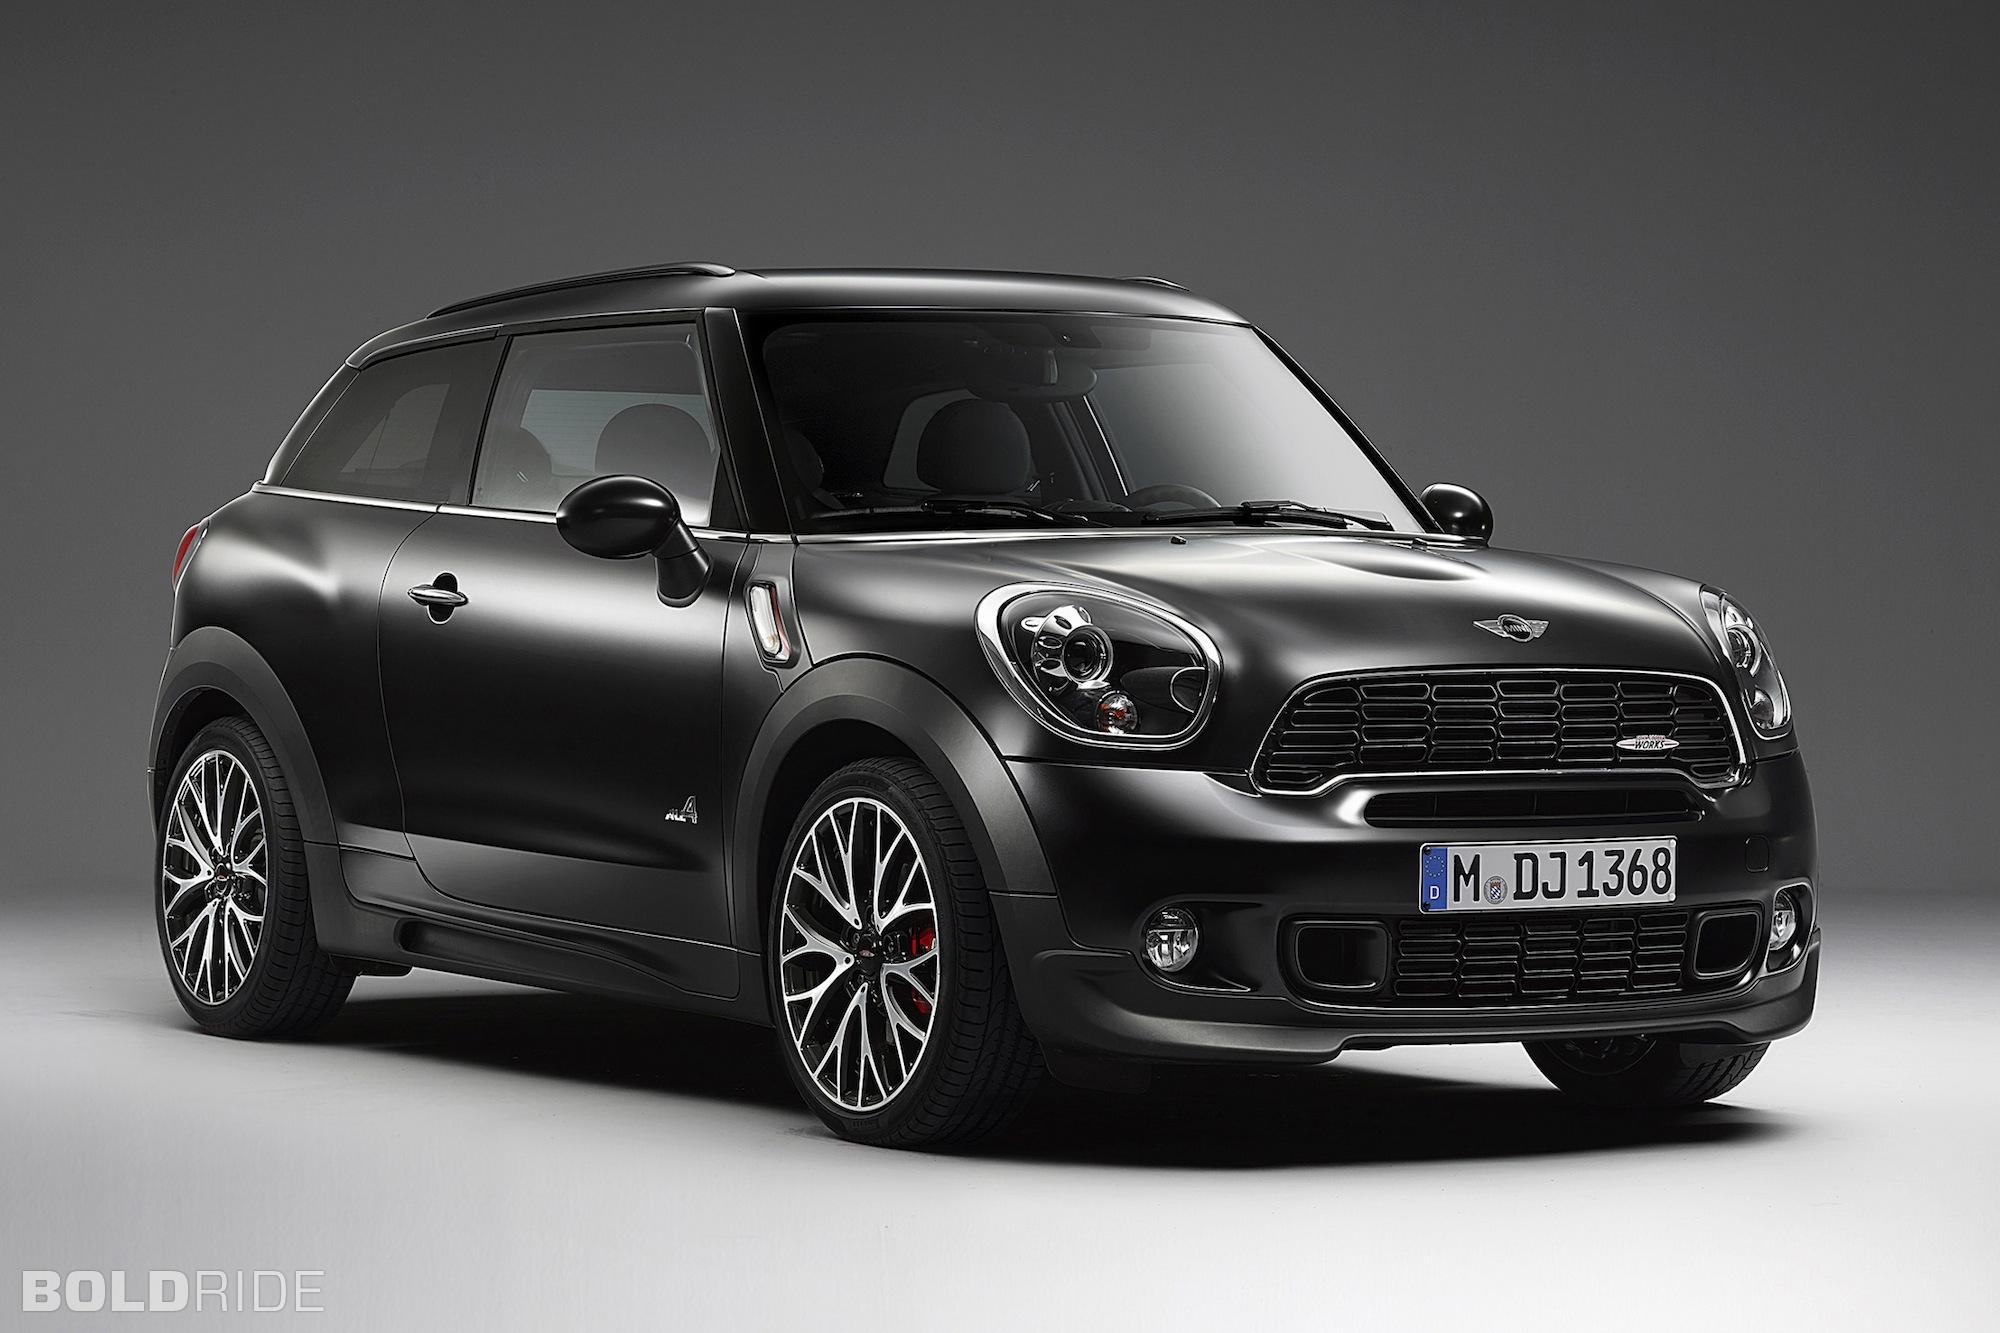 2014 Mini John Cooper Works Paceman Frozen Black 2000 x 1333